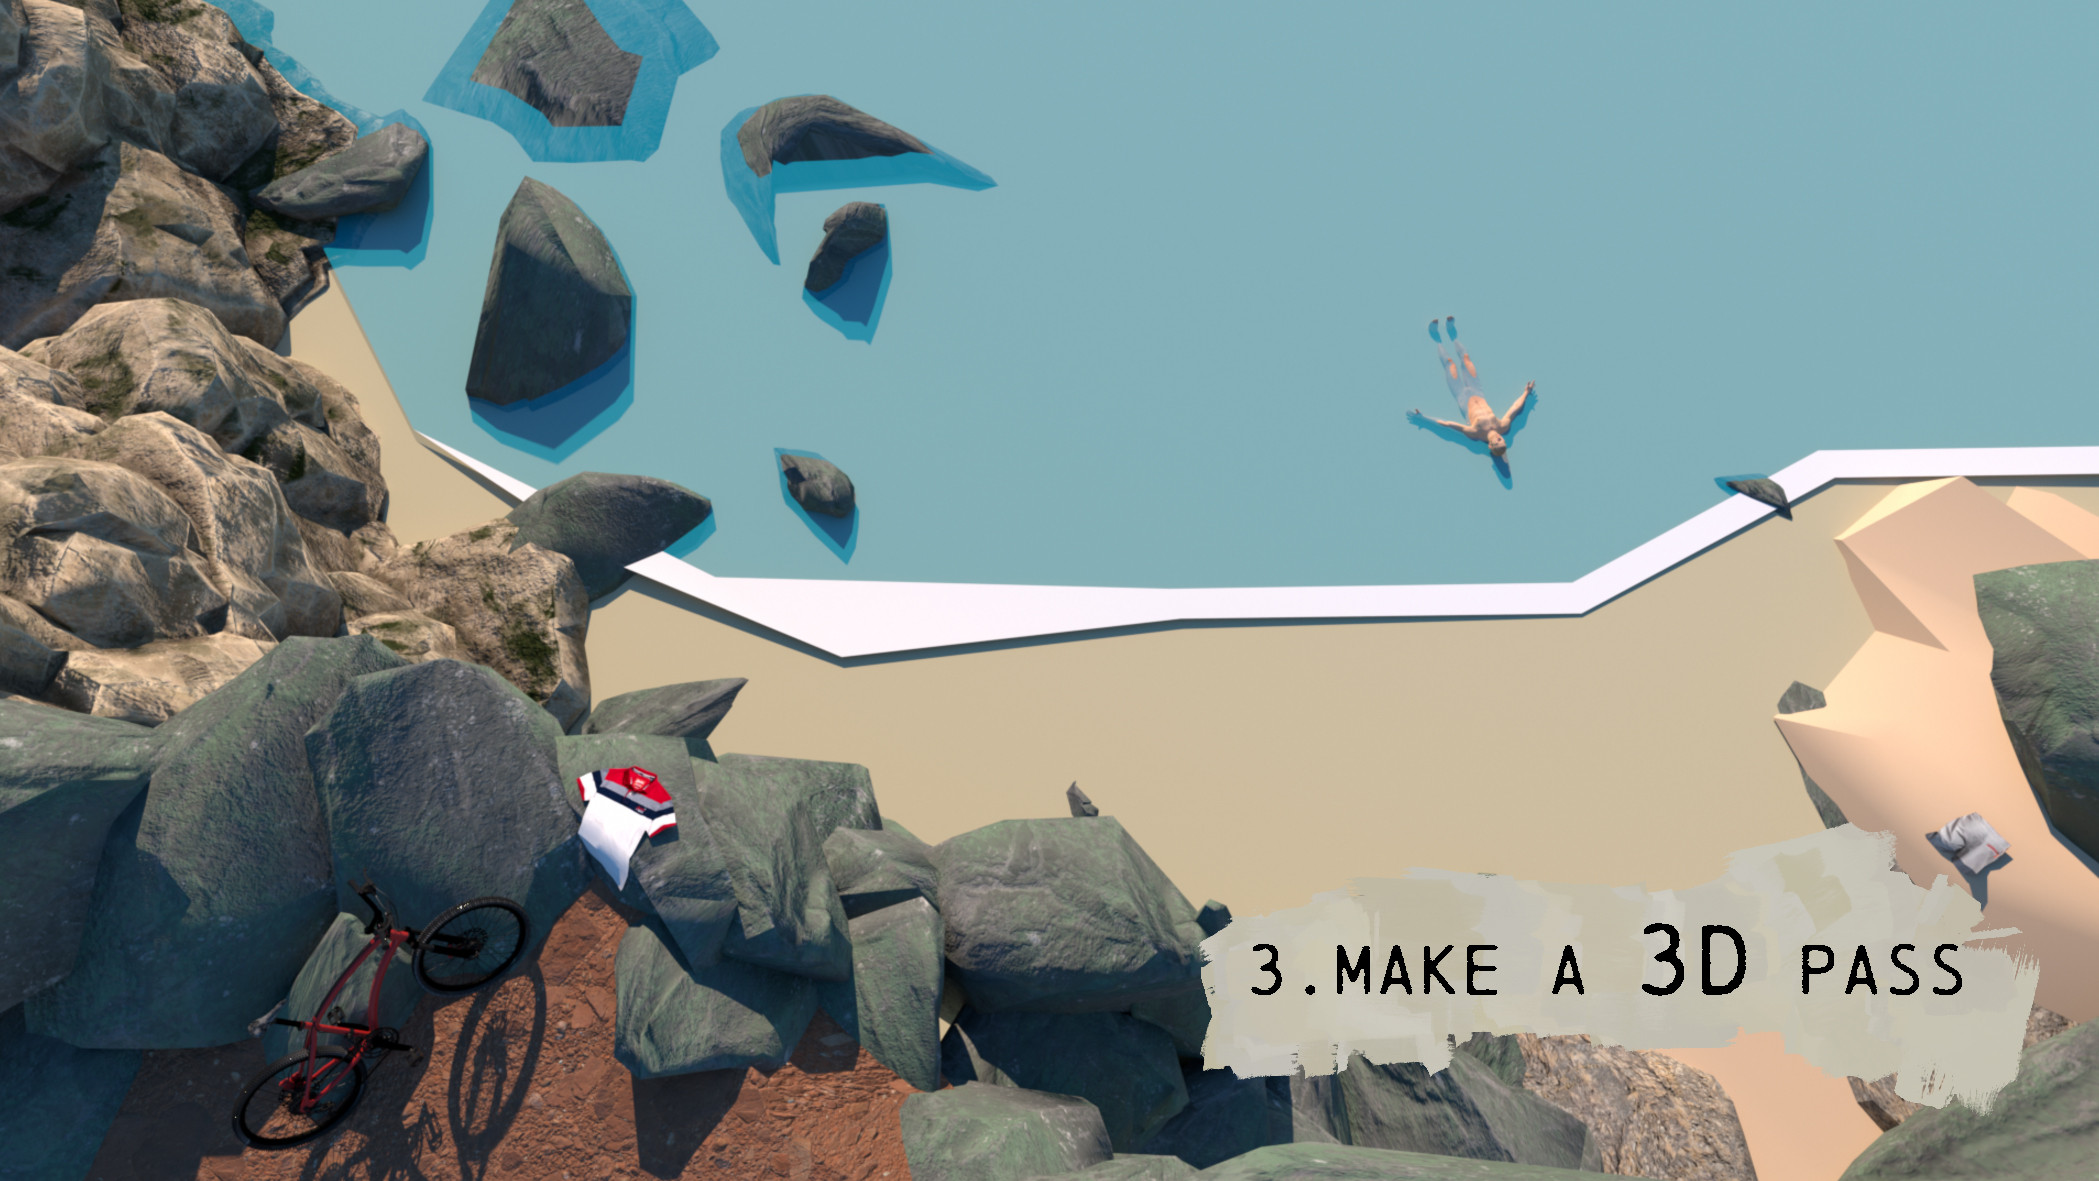 After I go on Cinema 4D help me with  the bike and try compositions with rocks.